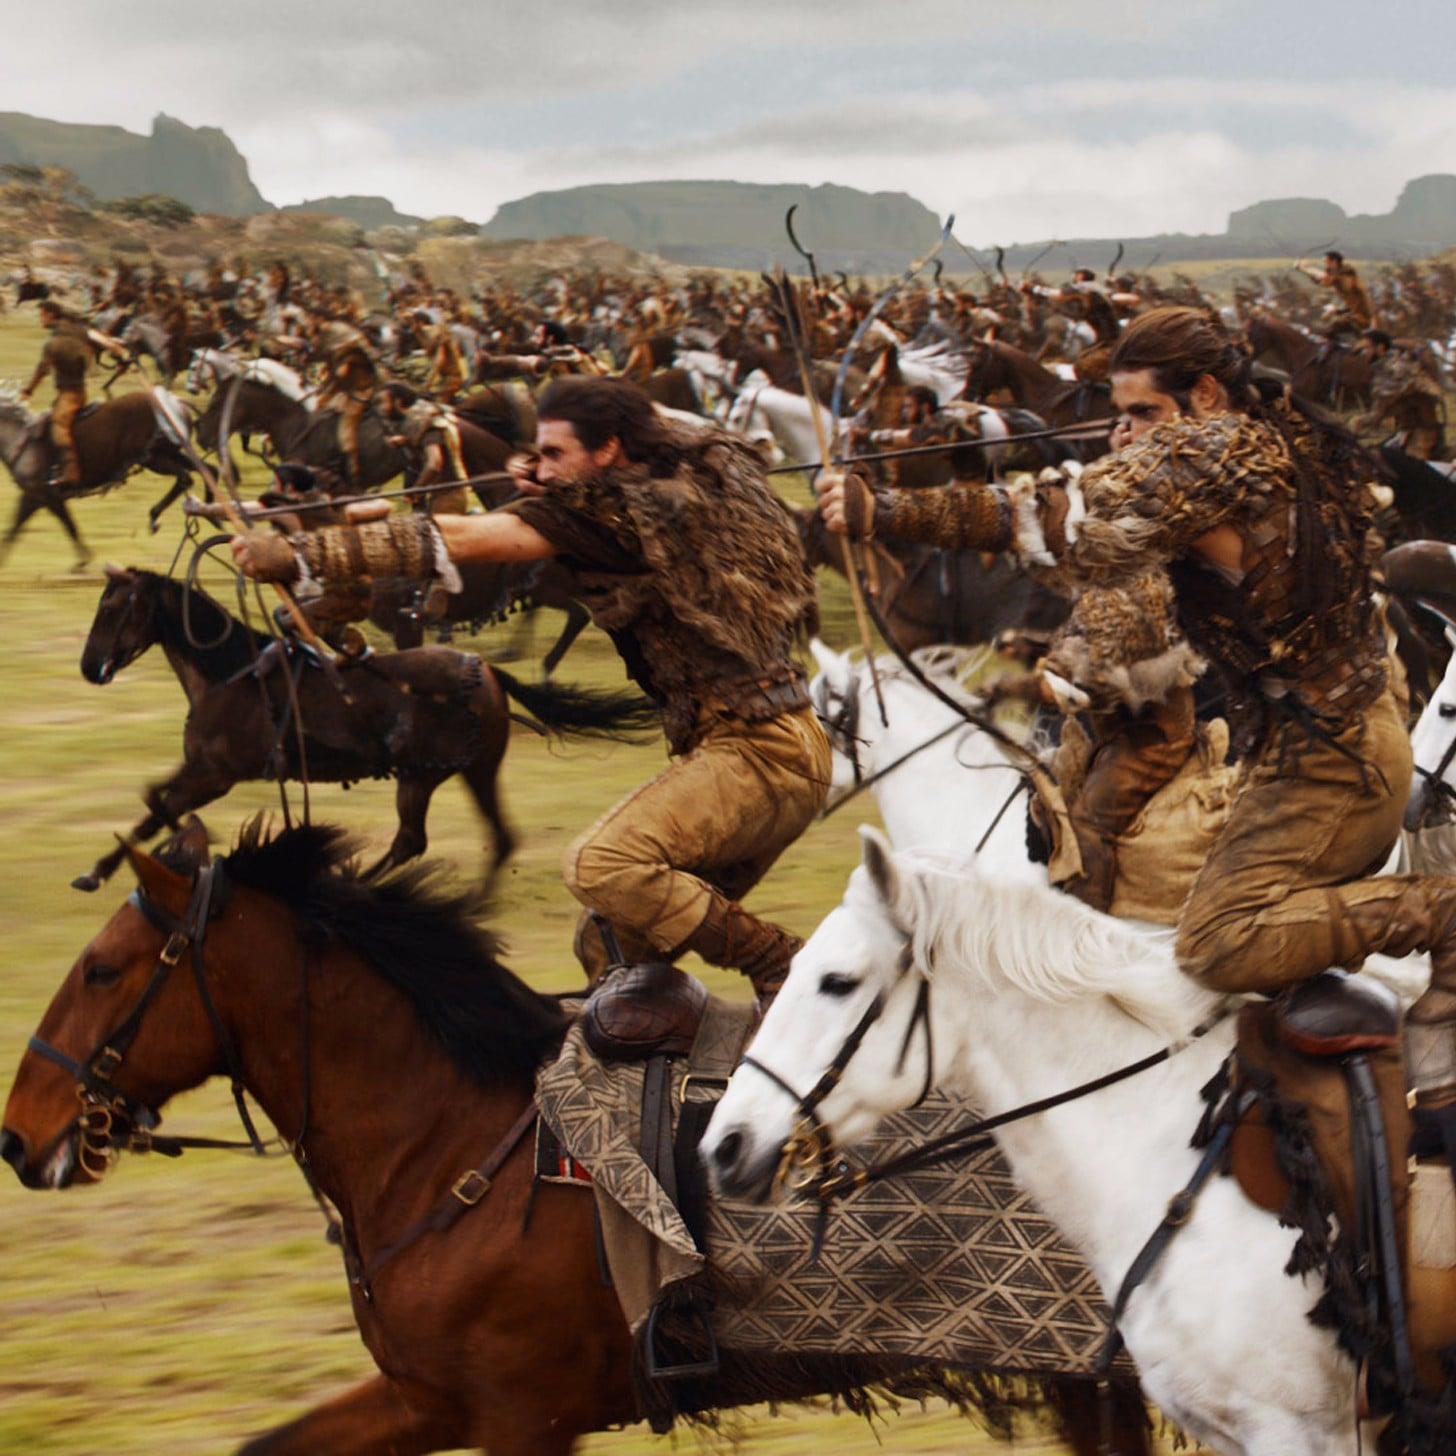 Reactions To The Dothraki In Battle On Game Of Thrones Popsugar Entertainment